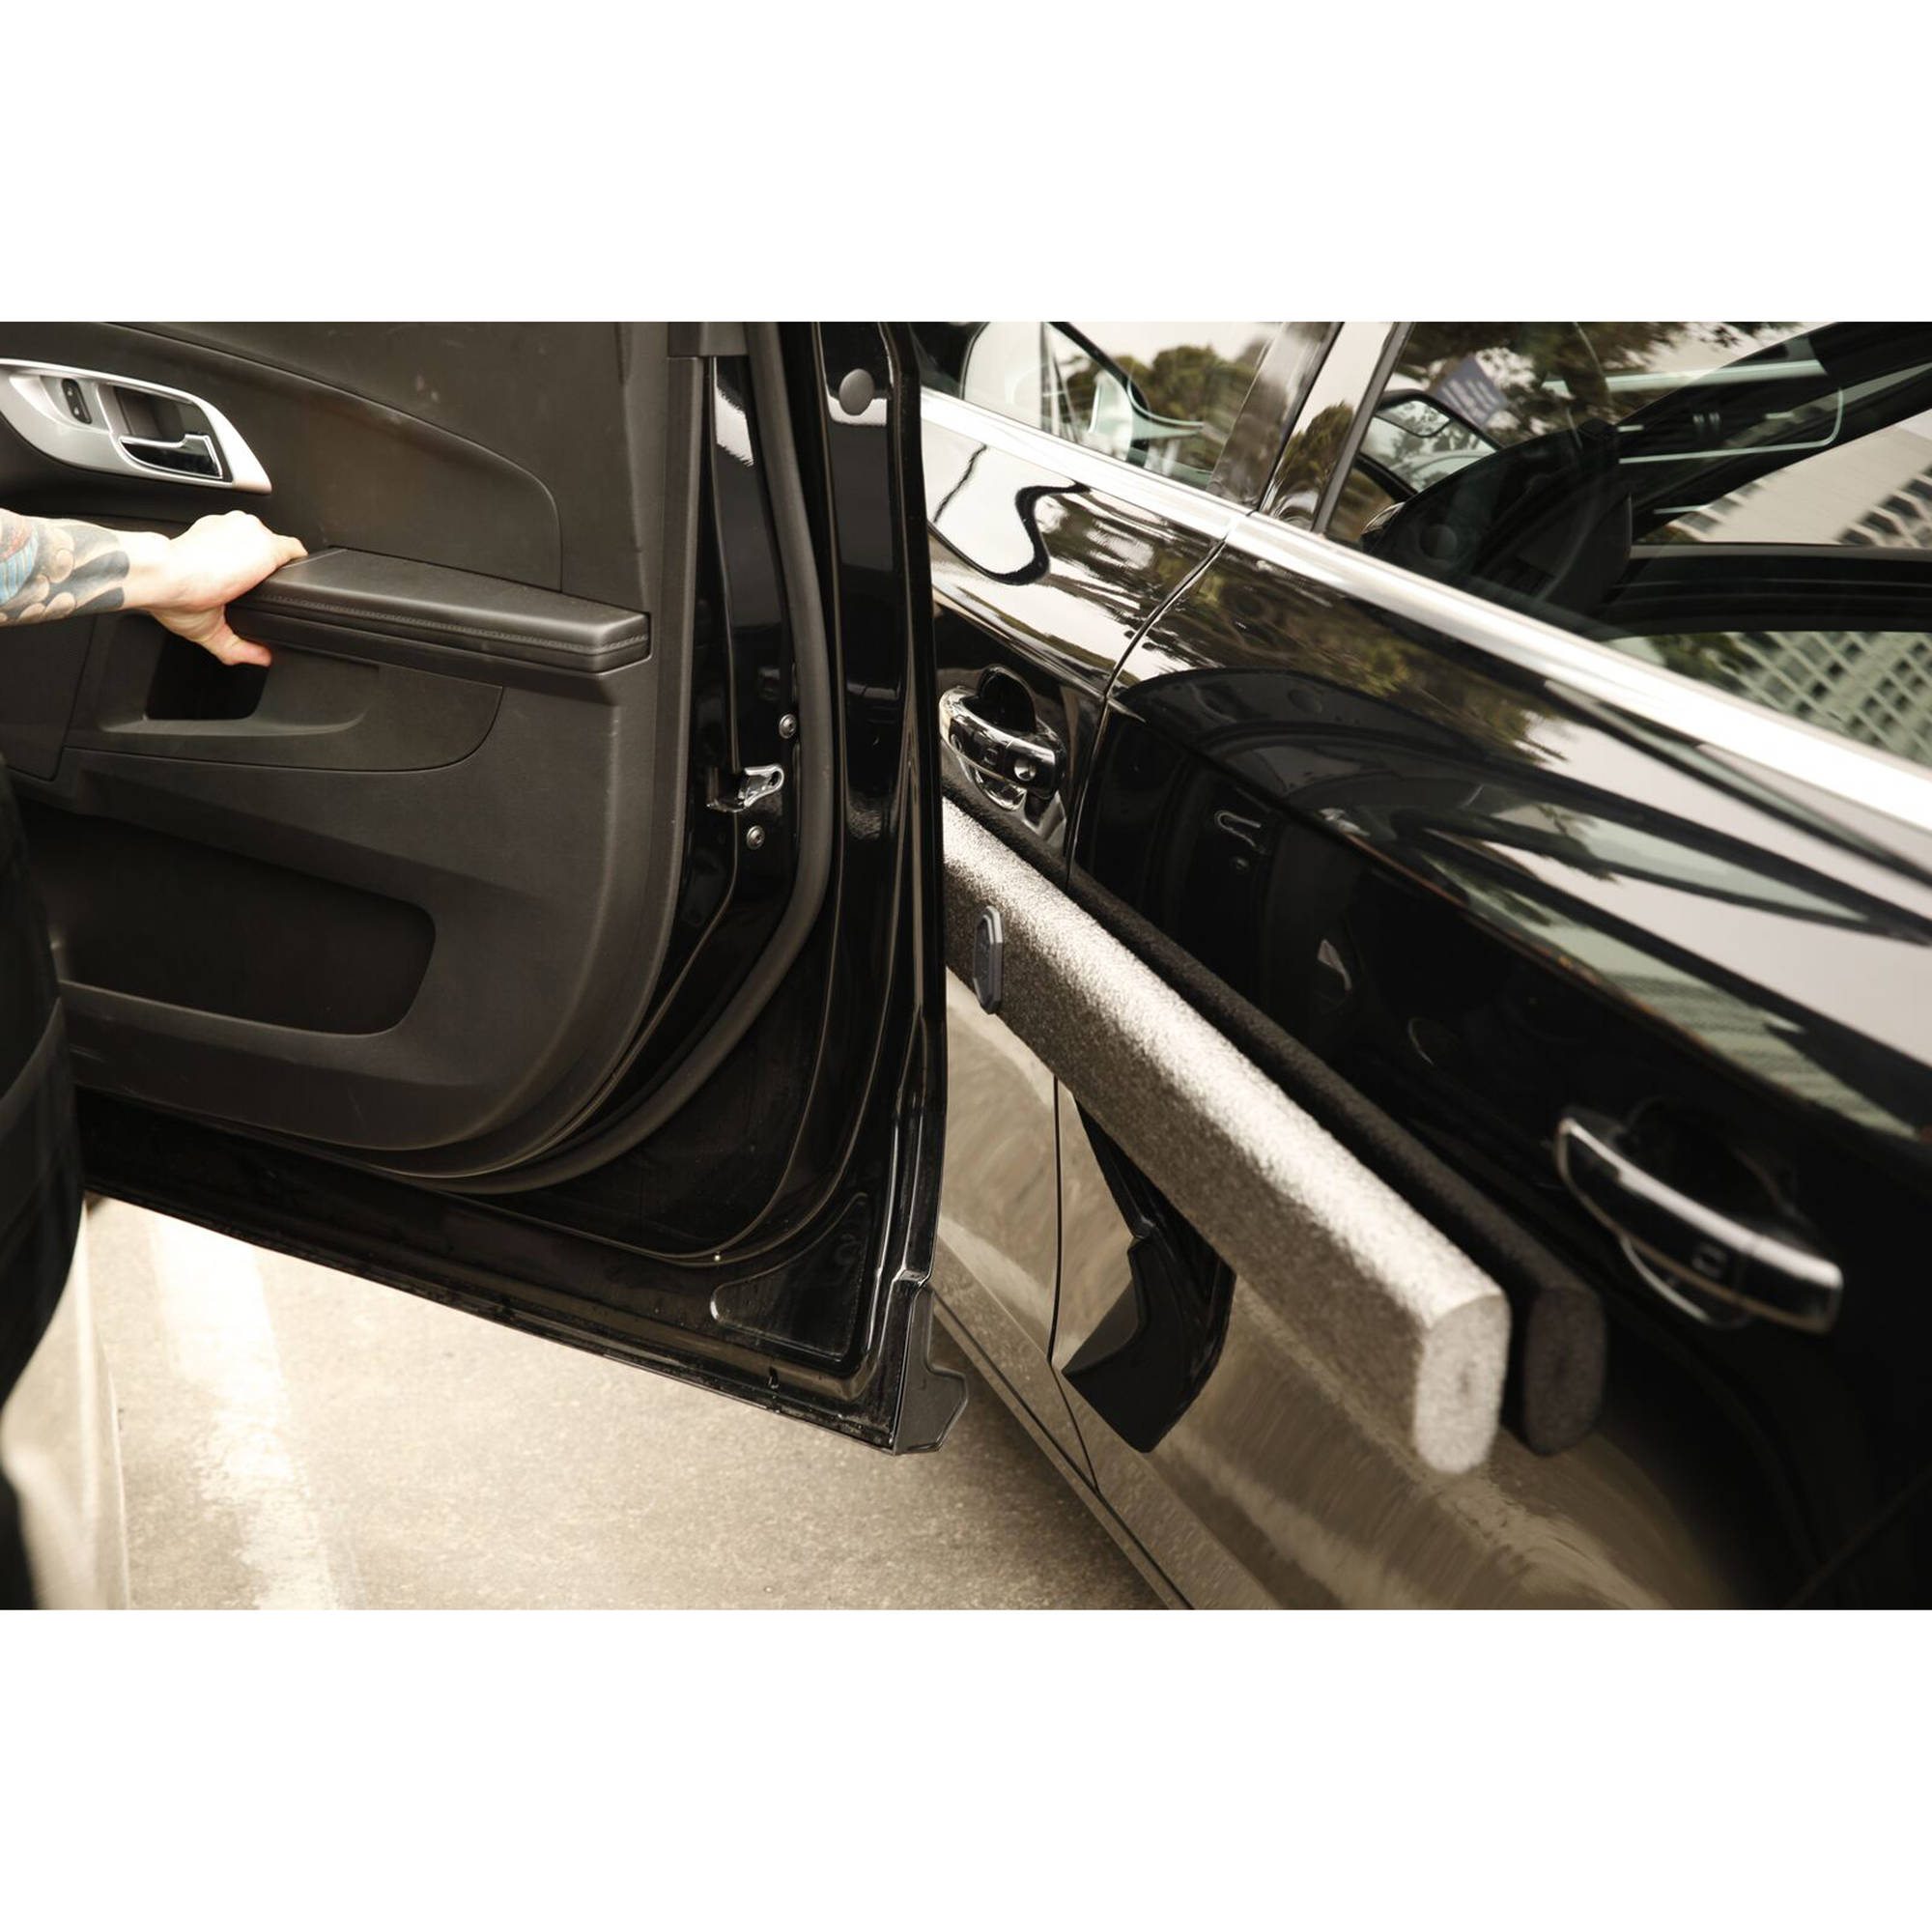 No Dings Car Door Bumper Guard - Walmart.com